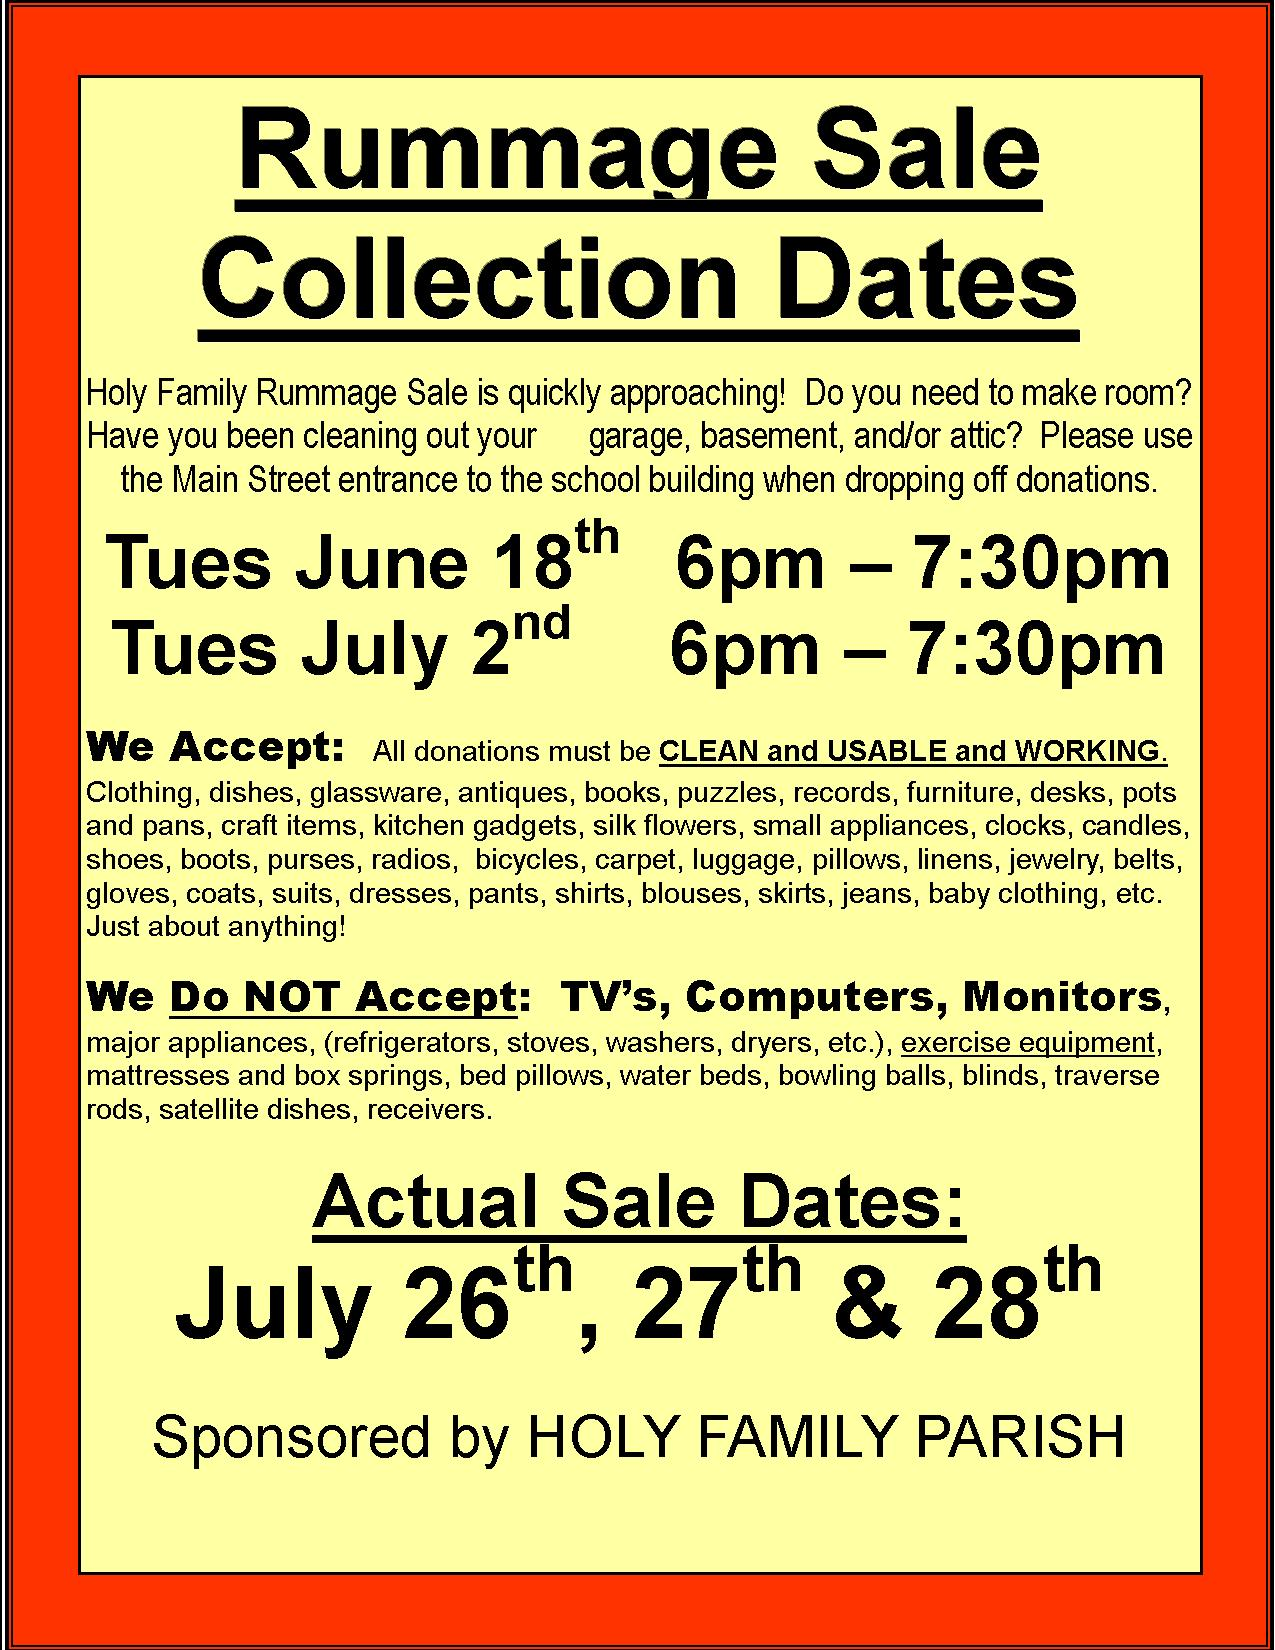 Rummage Sale 2019 collection 2 dates – Holy Family Church